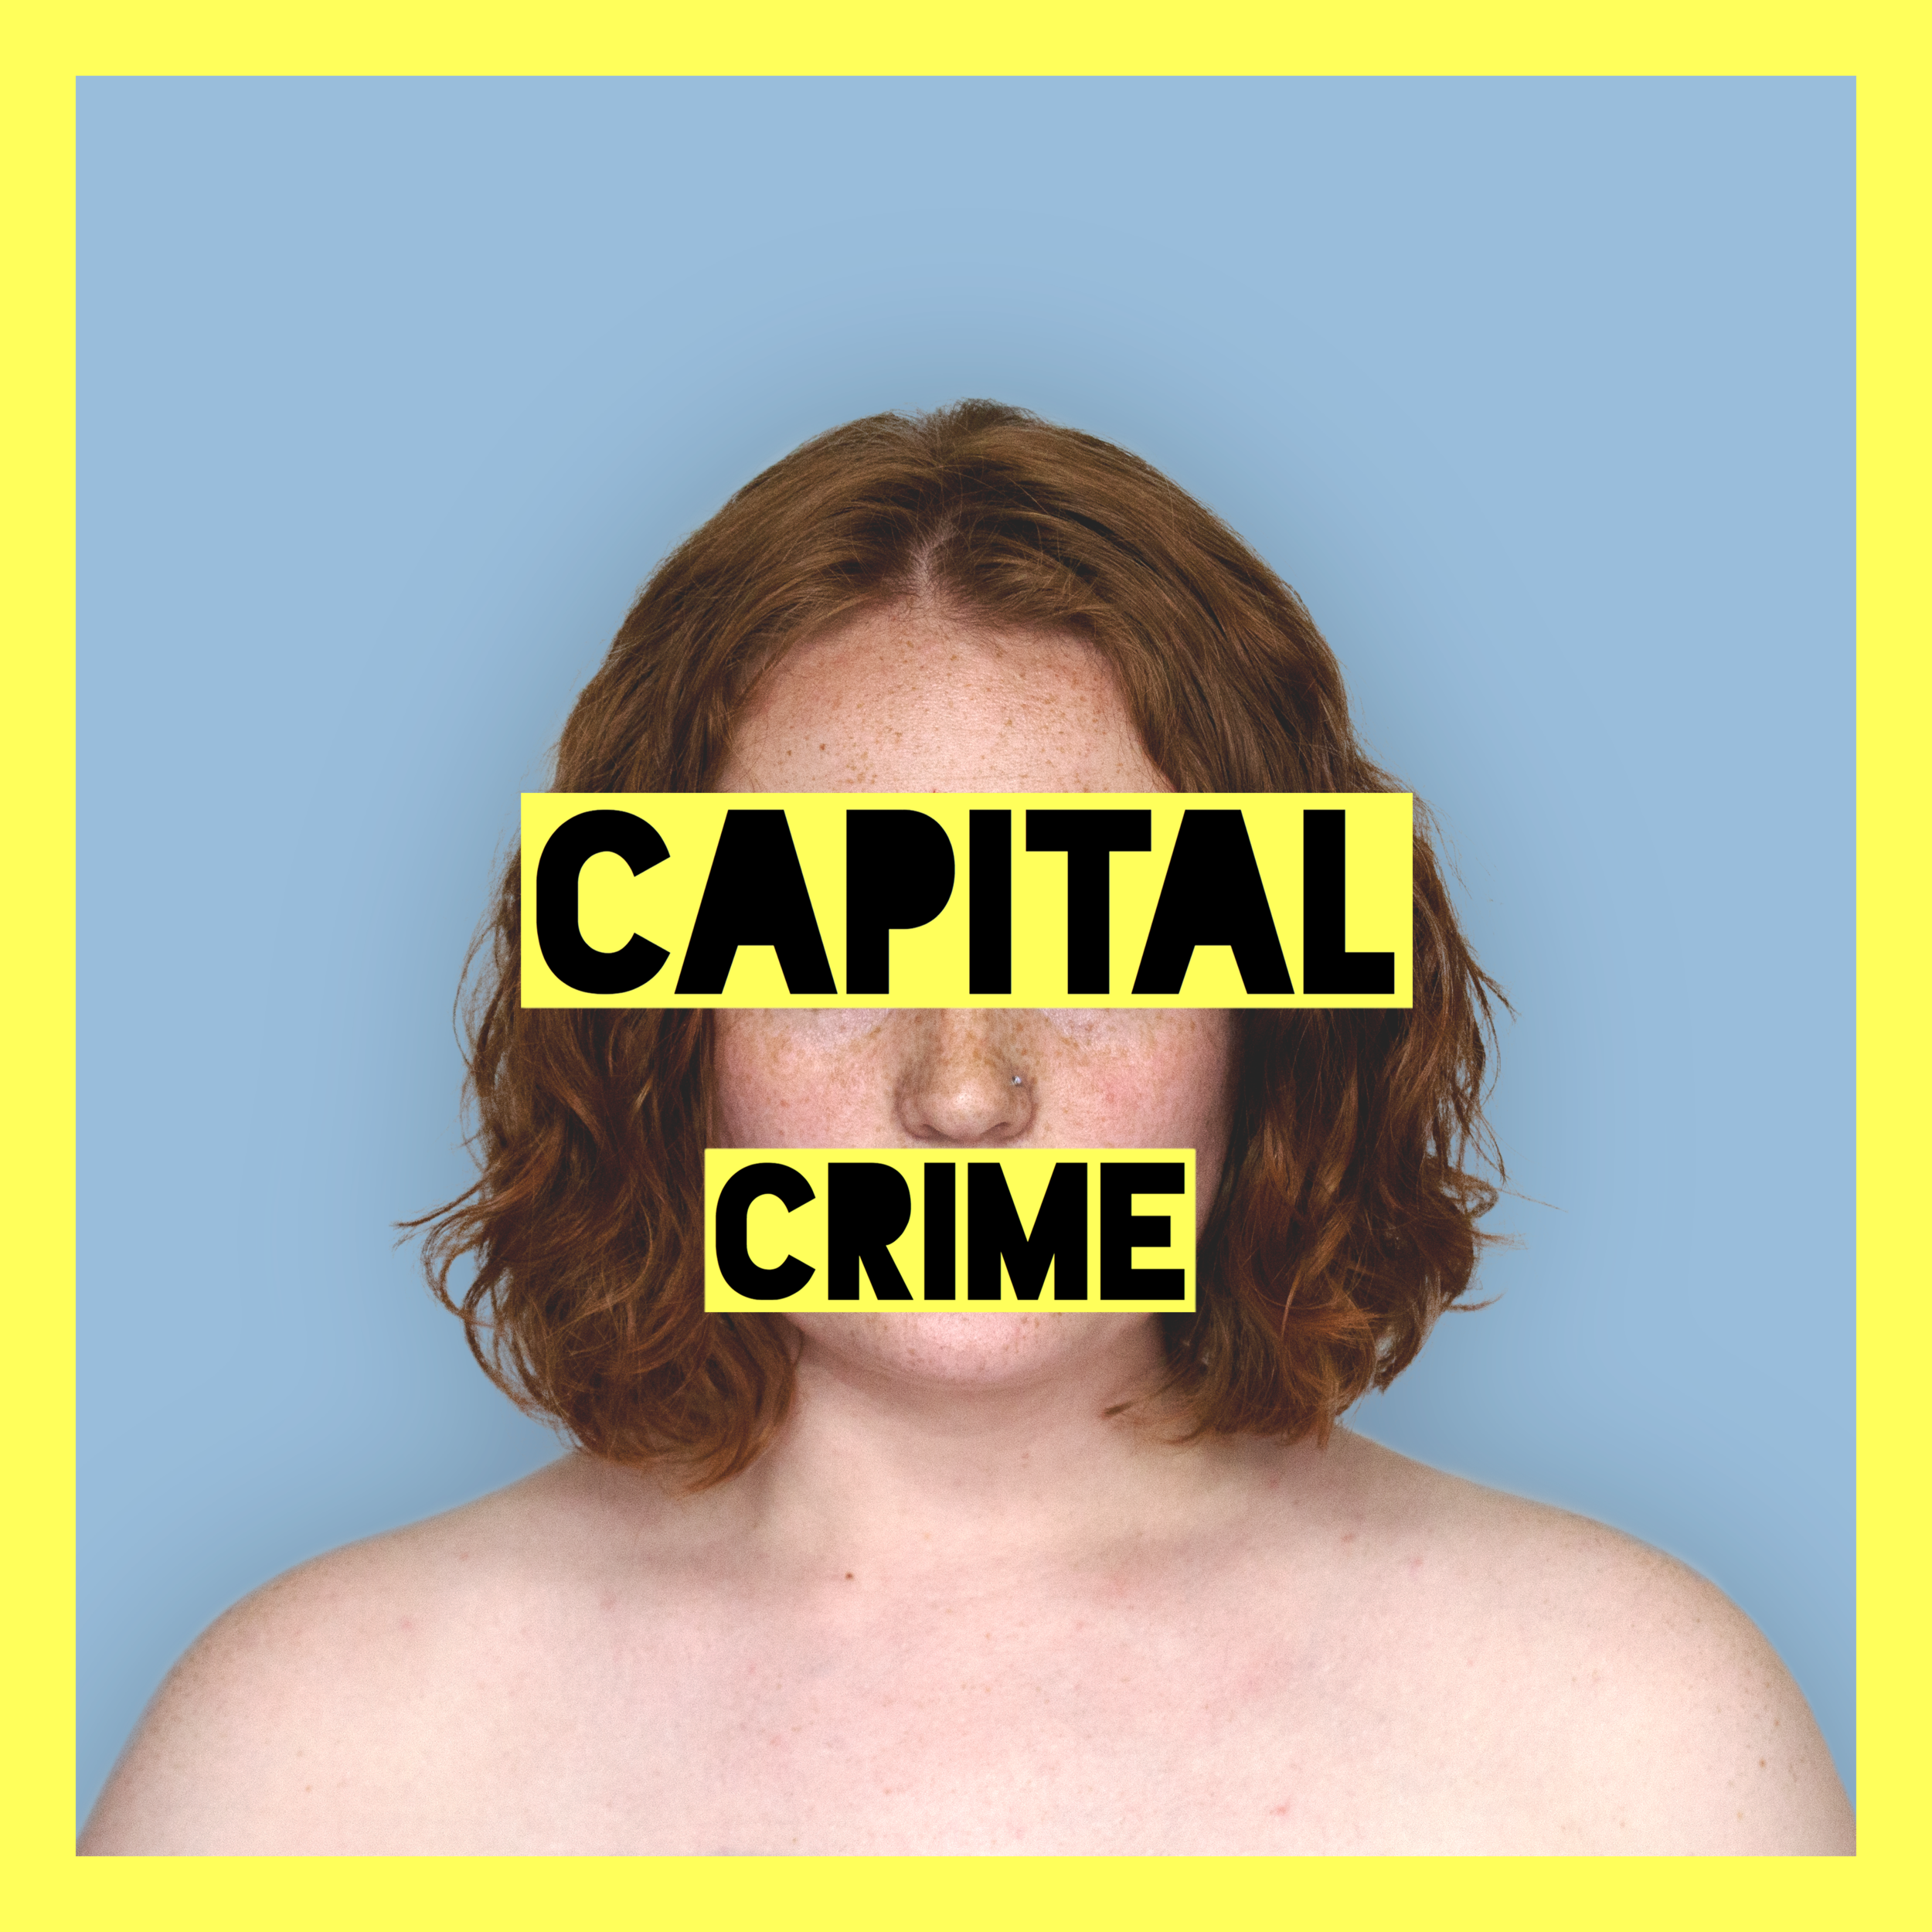 Capital Crime Final Cover.png